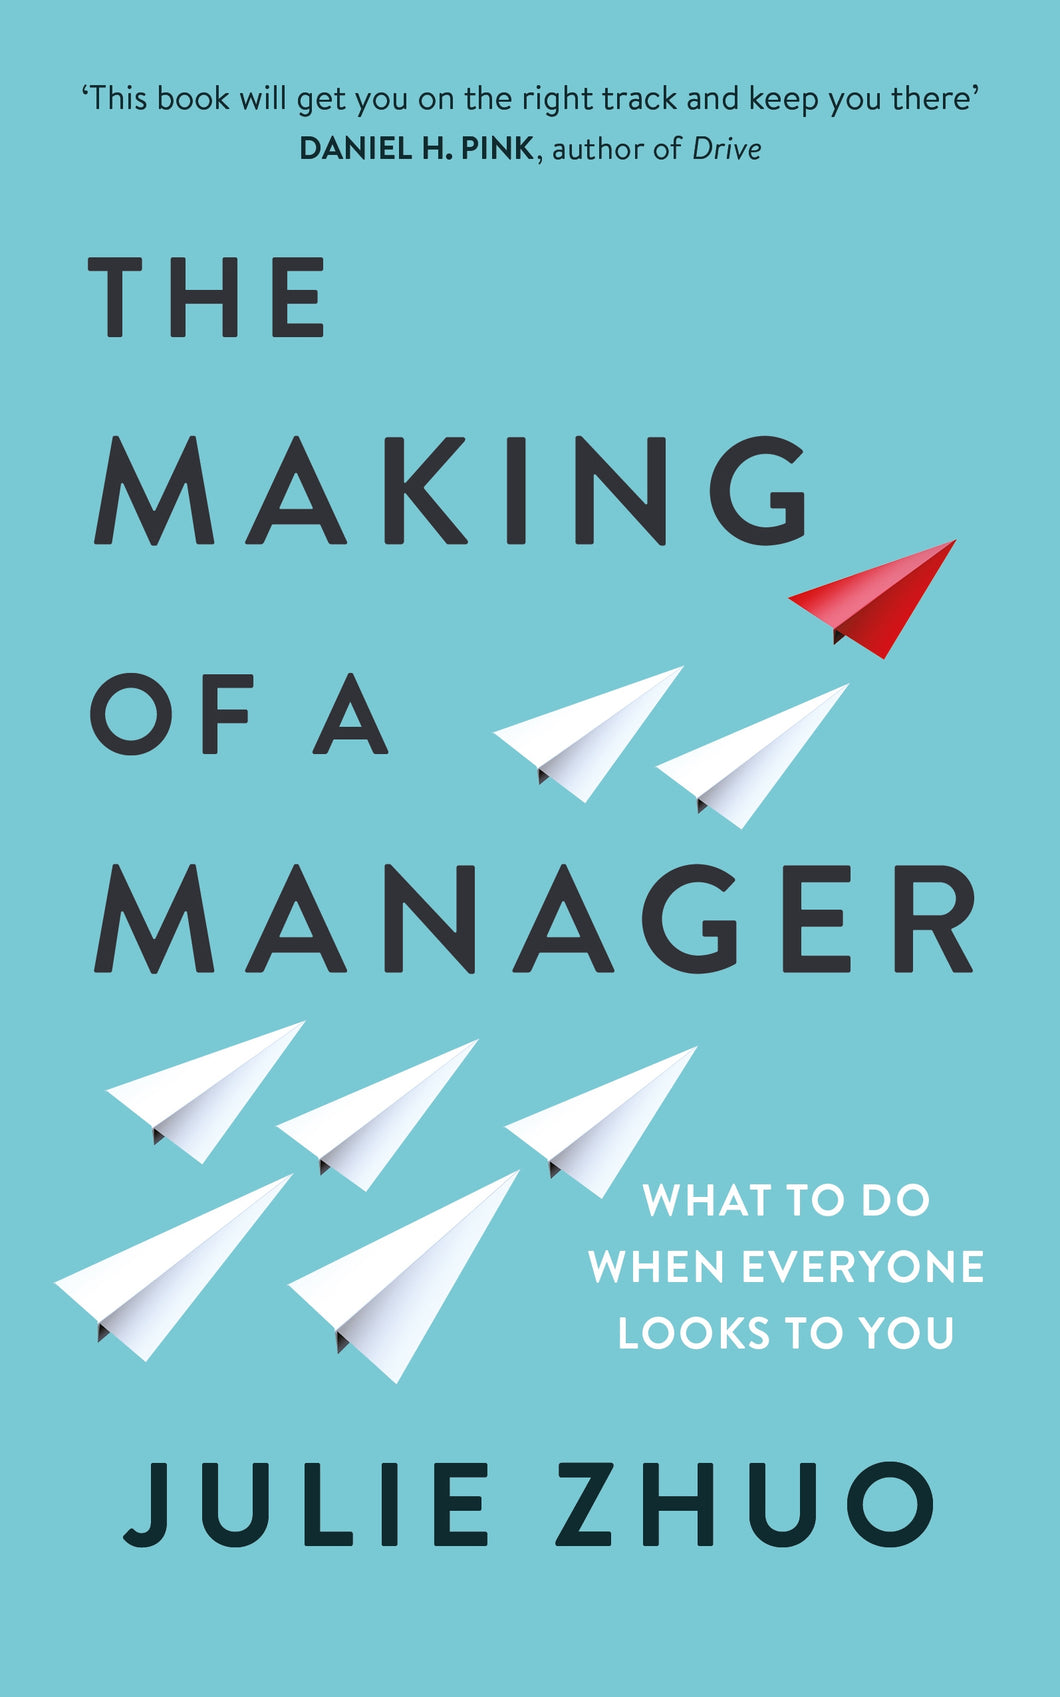 The  Making of a Manager -What to Do When Everyone Looks to You